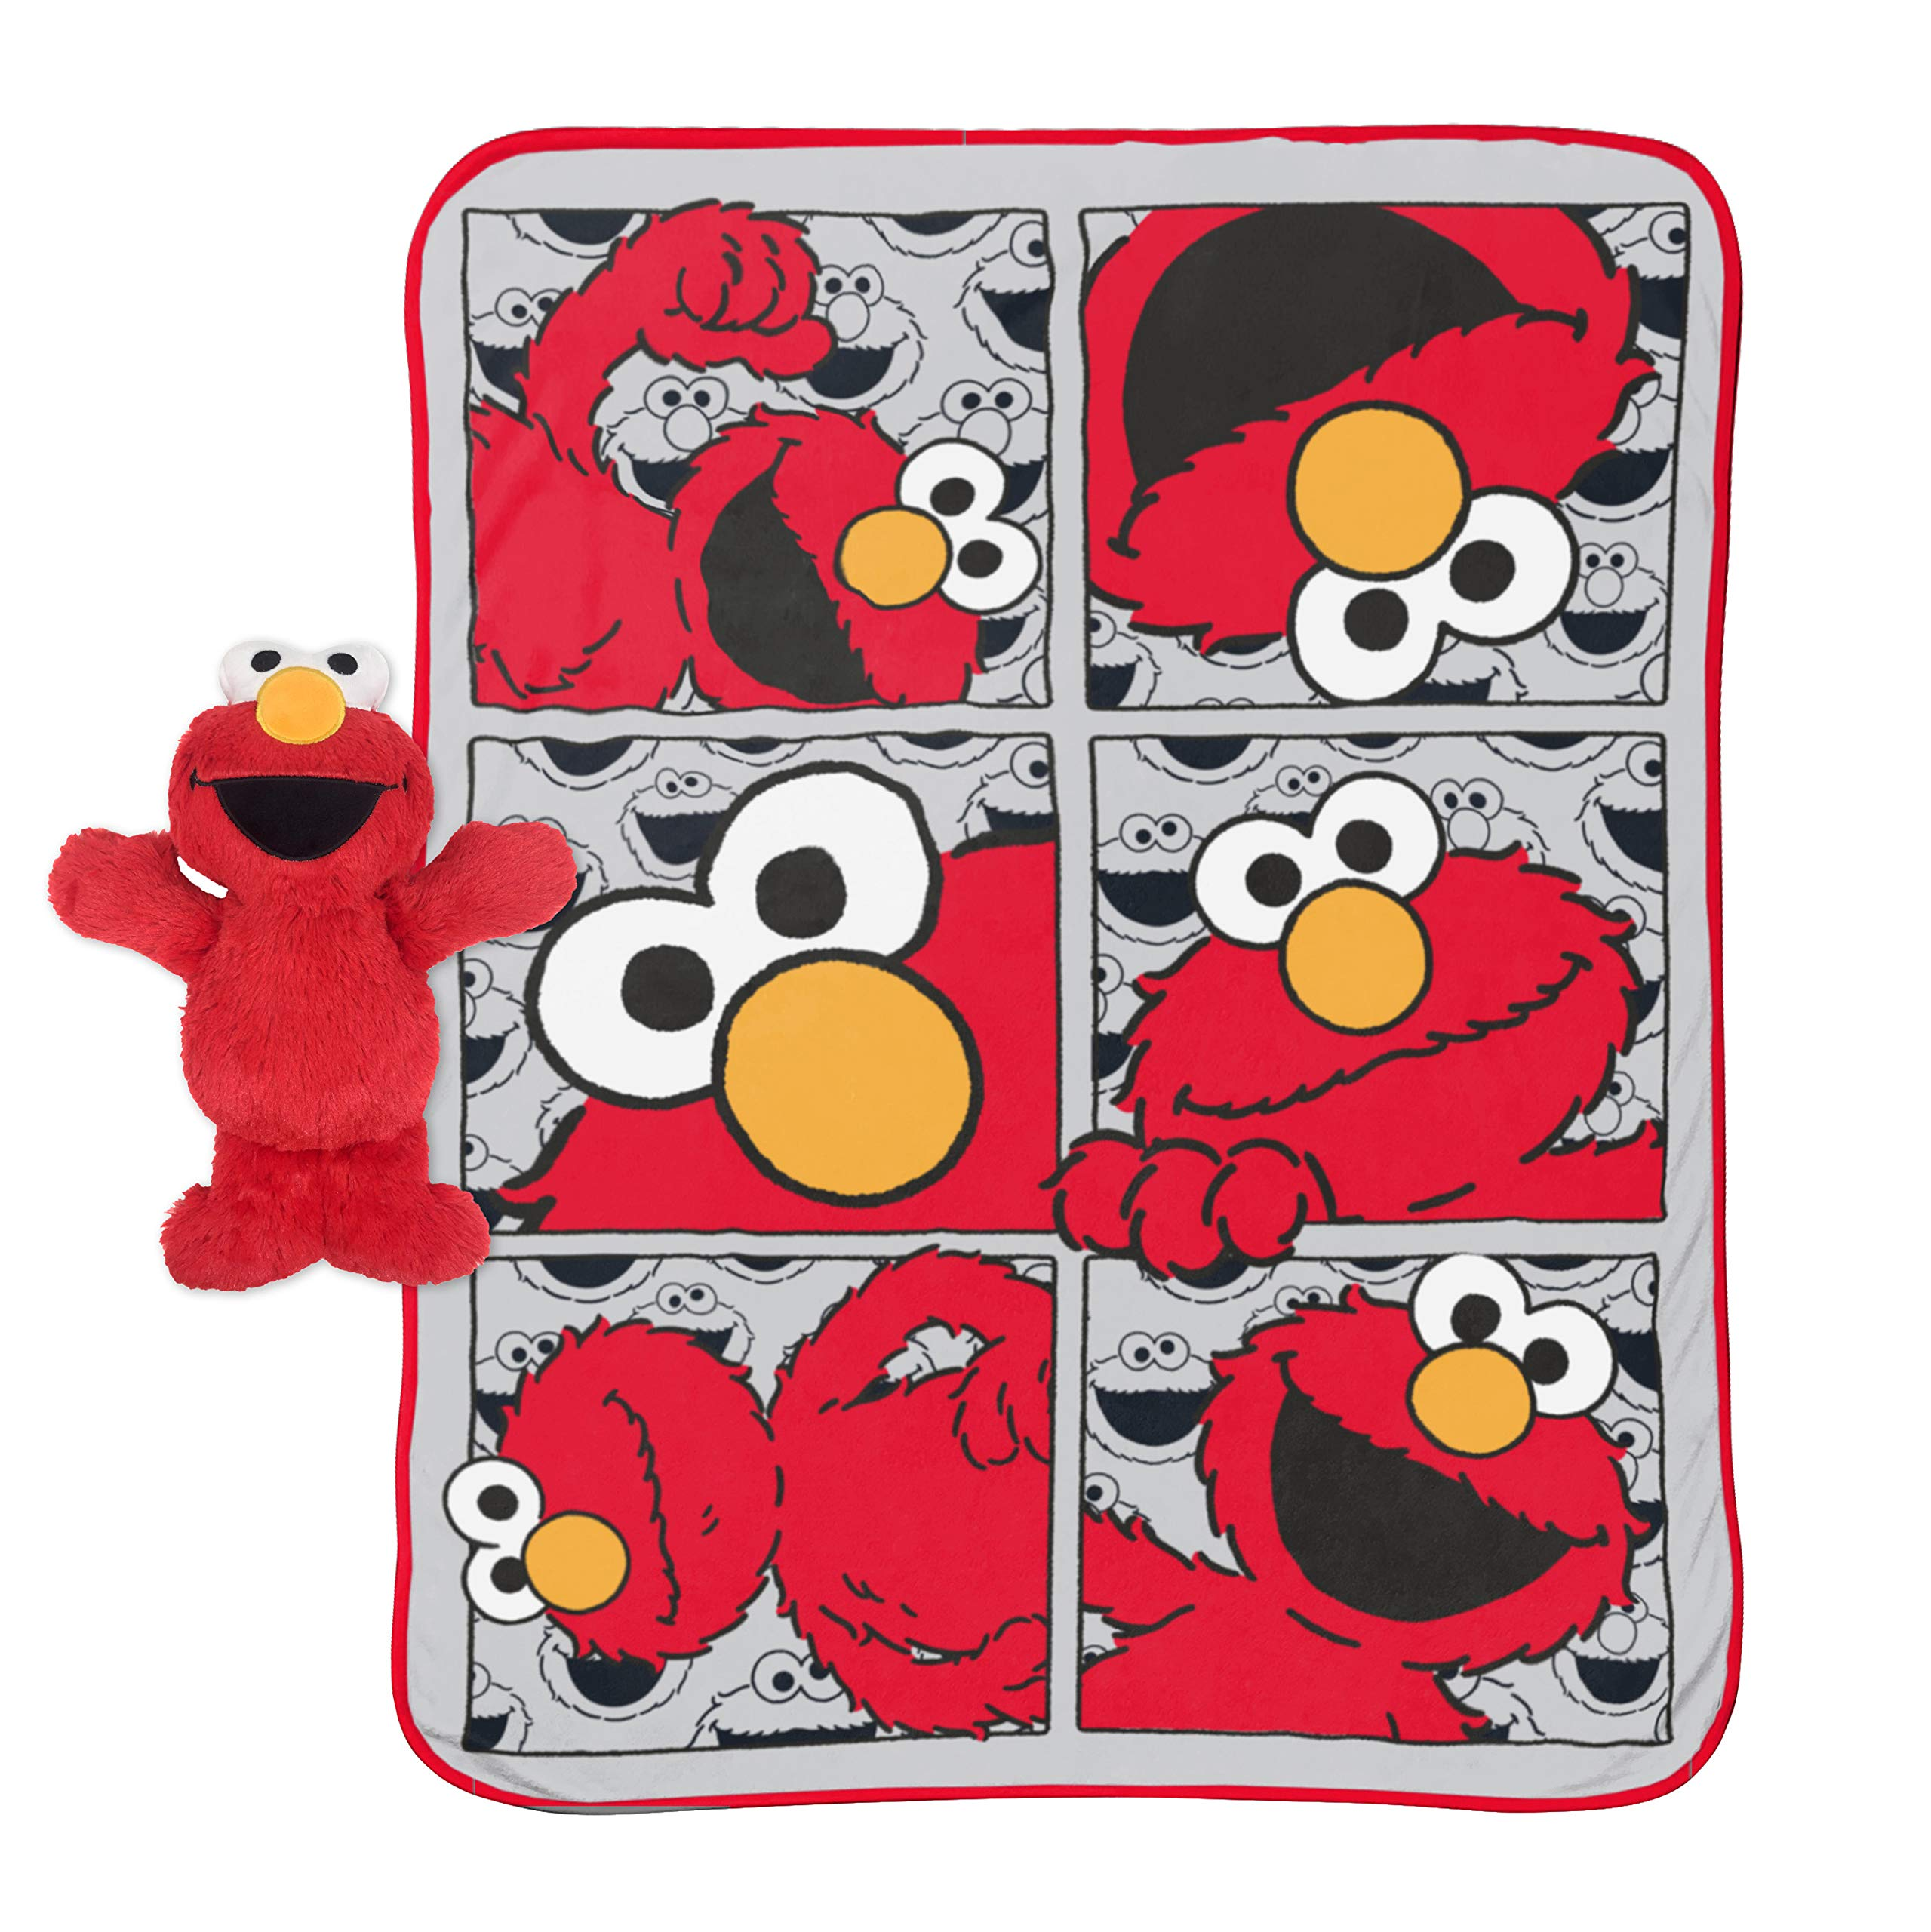 Jay Franco Sesame Street Hip Elmo 12 inch Character Pillow and Throw Blanket Set - Measures 40 inch x 50 inches - Kids Super Soft Character Pillow Set (Official Sesame Street Product) by Jay Franco